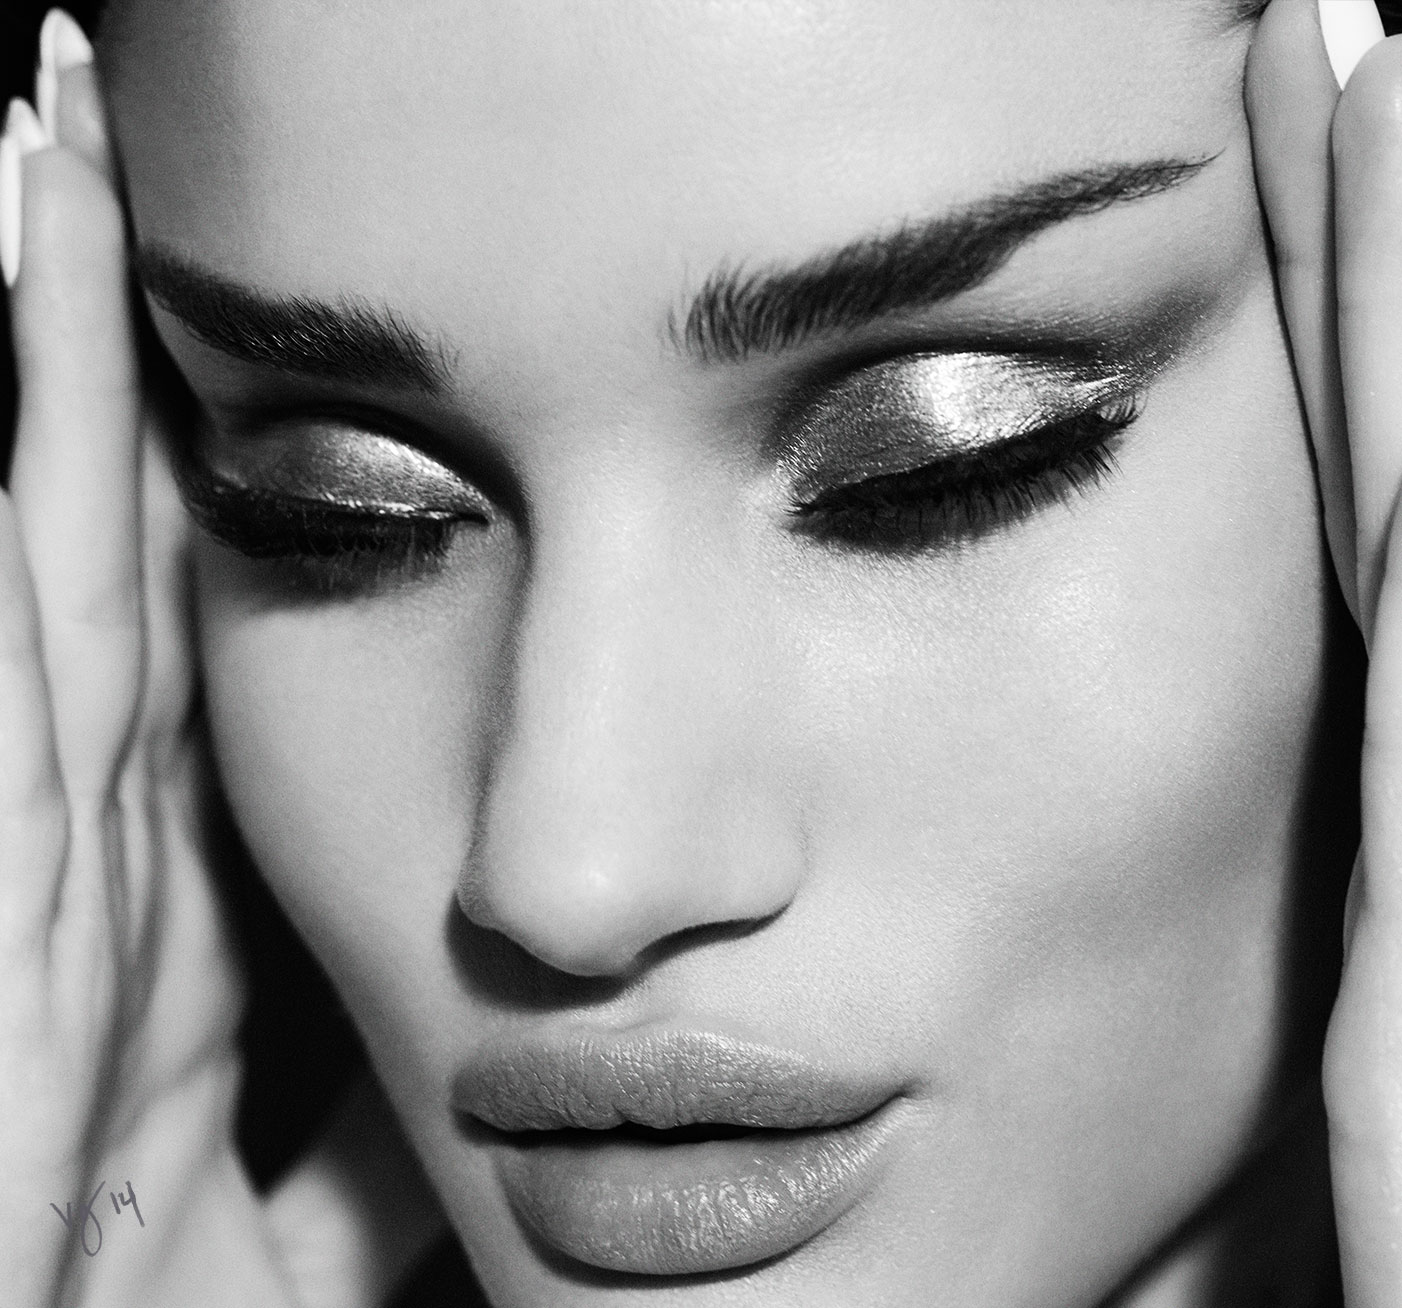 Makeup artist Kate Lee offers a masterfully layered false lash tutorial featuring Rosie Huntington-Whiteley, now on #VioletGrey, The Industry's Beauty Edit